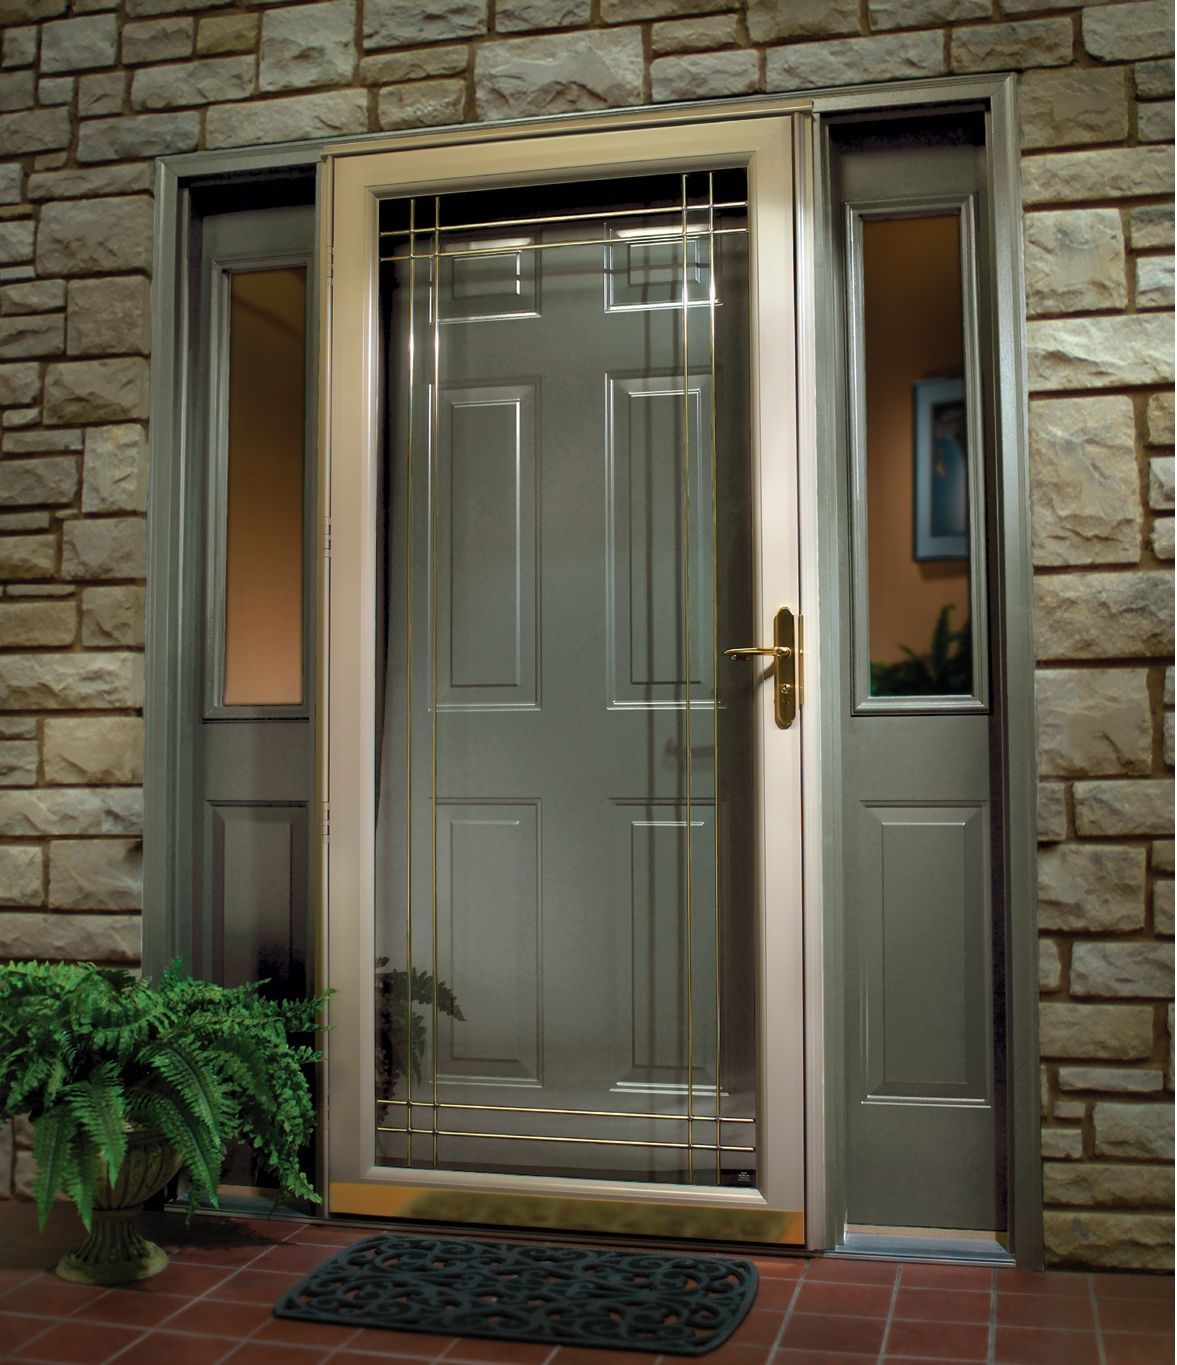 The Larson Cedar Storm Door Boasts Both Traditional Styling And Durable Design Built With A Weartuff Reversa Scre Storm Door Larson Storm Doors Cozy Cottage